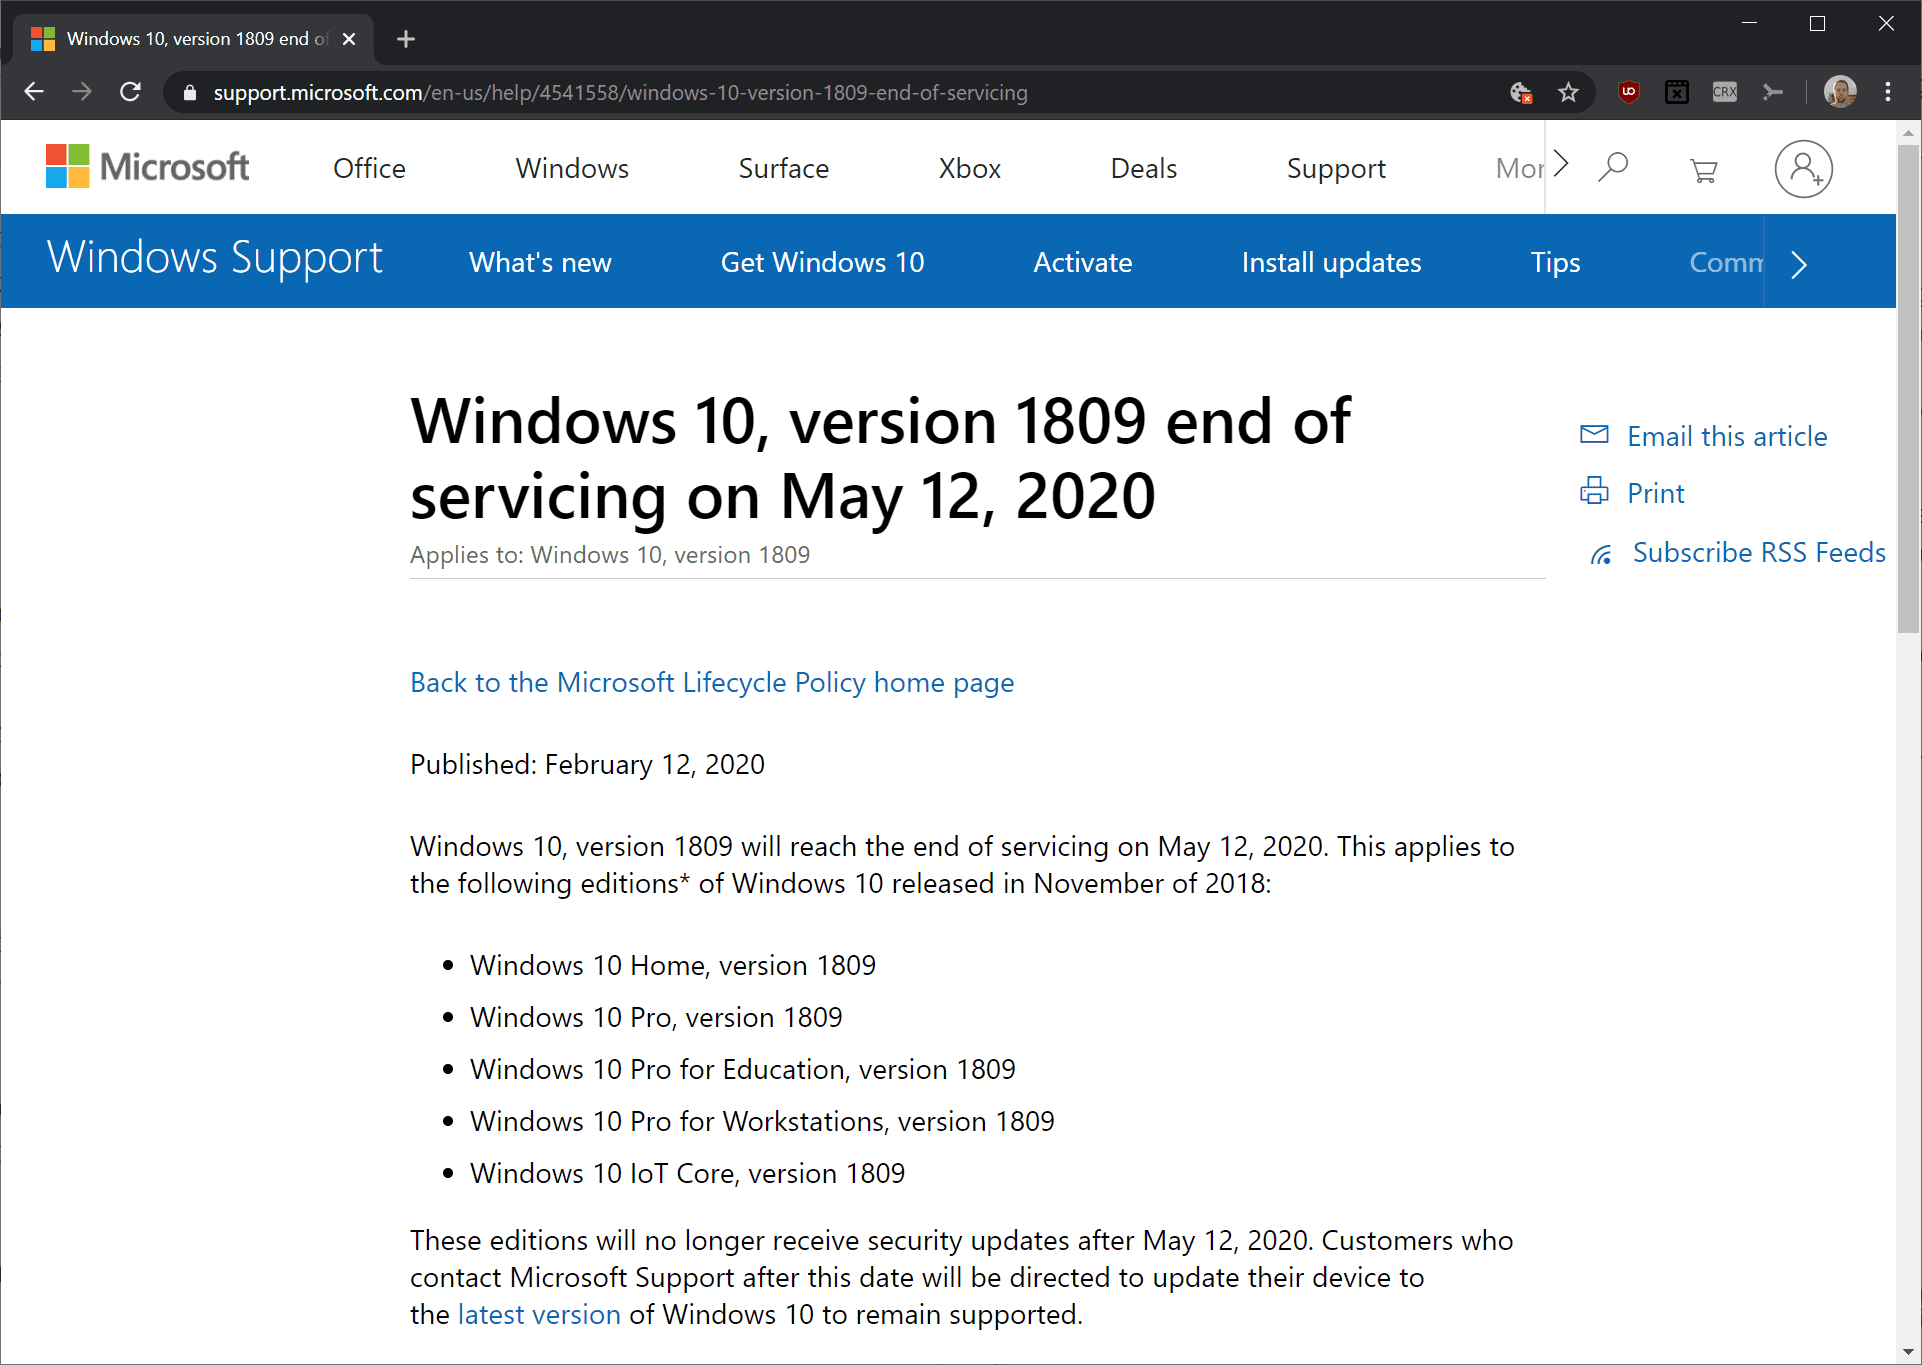 windows 10 versión 1809